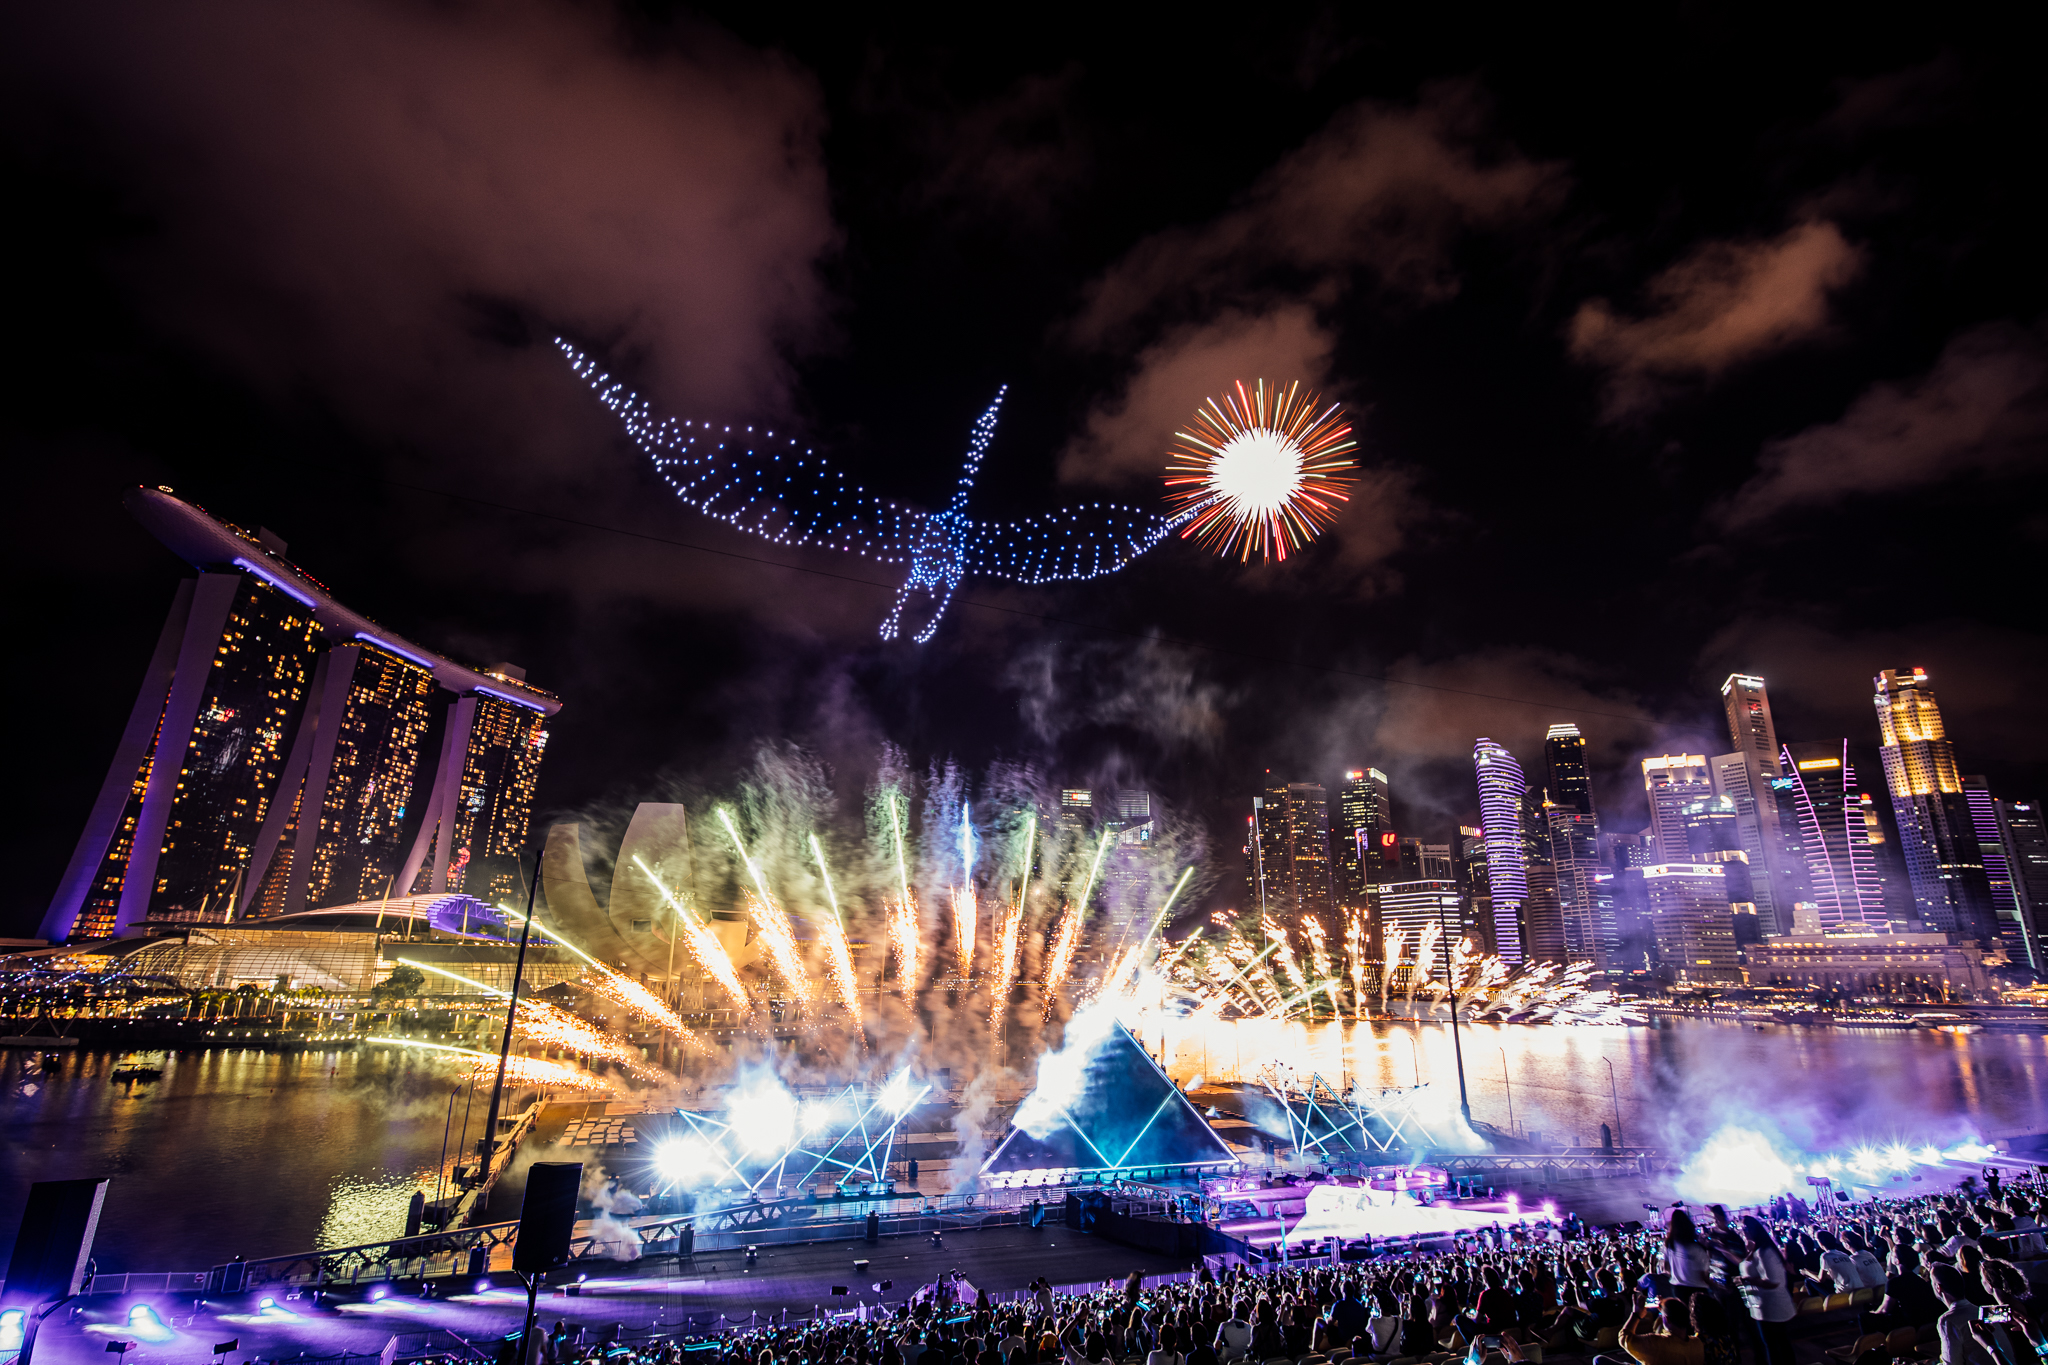 Featuring a choreography involving 500 drones, STAR ISLAND is a multi-sensory fireworks musical show! Did you attend the show? Which was your favourite formation? Photo courtesy: Urban Redevelopment Authority